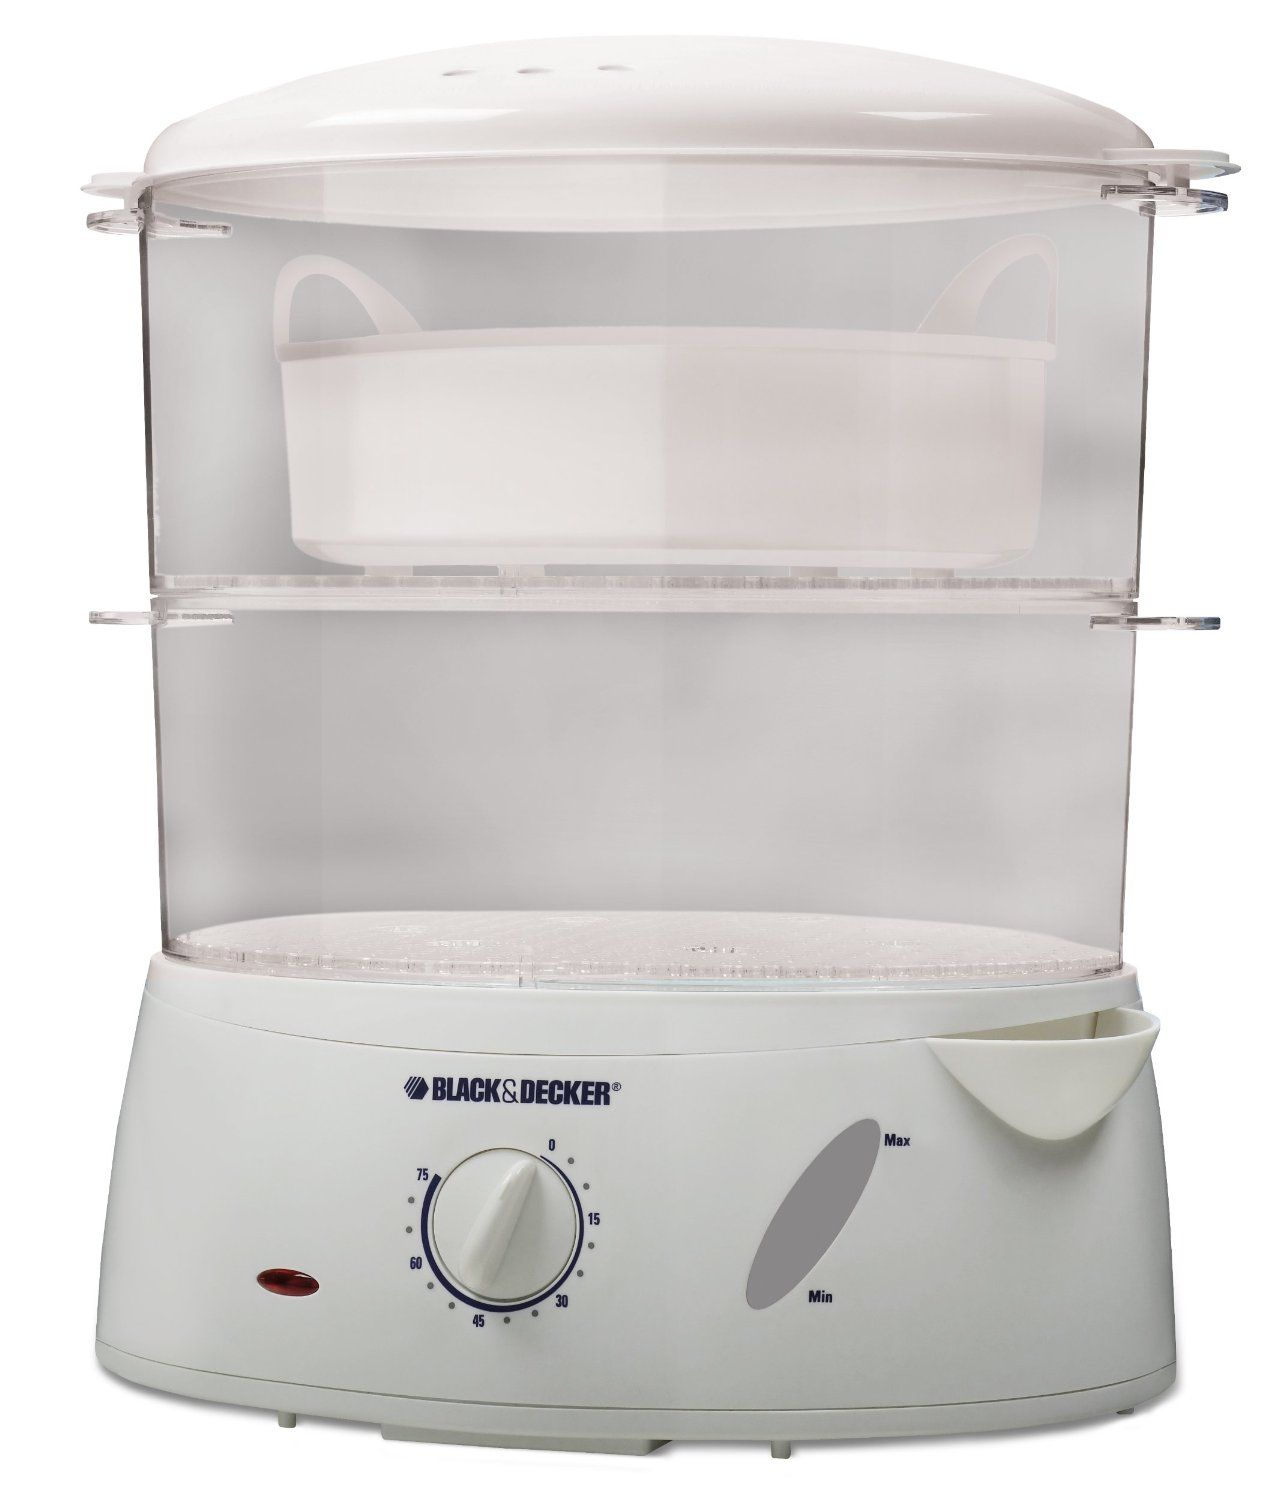 Black Decker 7 Quart 2 Tier Food Steamer Rice Cooker Is Large Enough For Steaming All Kinds Of Food Such As Ve